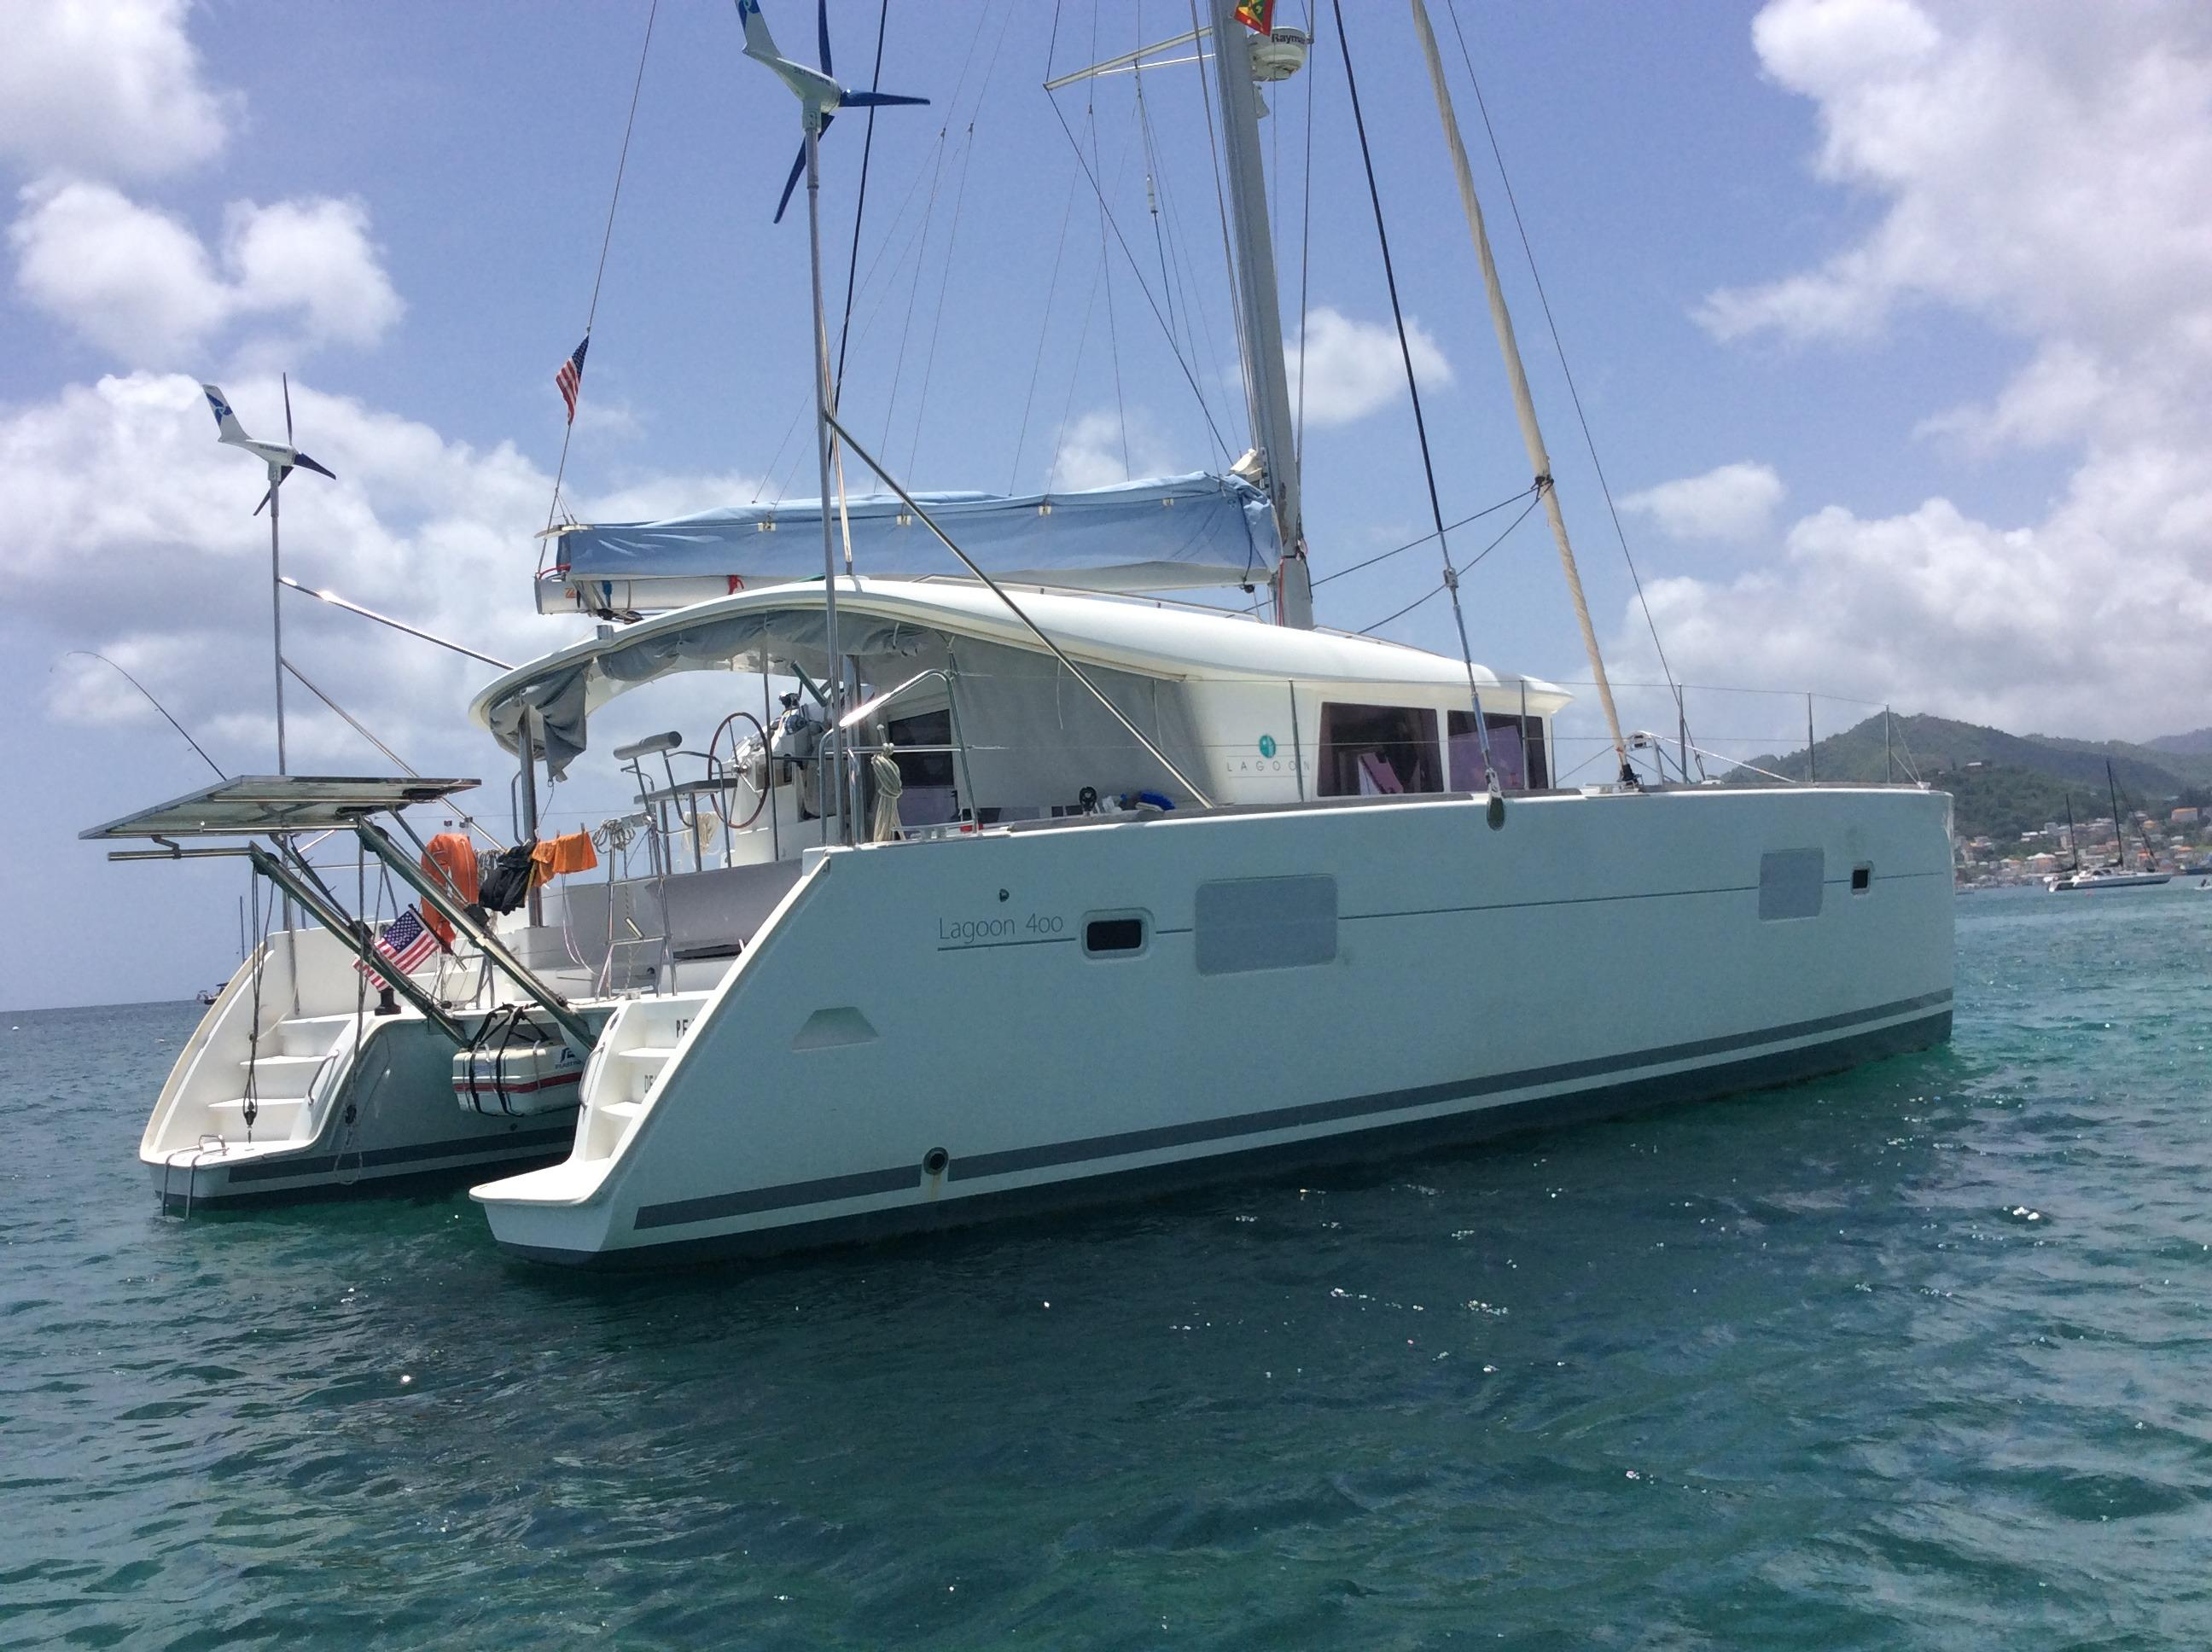 2010 Lagoon 400 Owner Version Sail Boat For Sale Wwwyachtworldcom